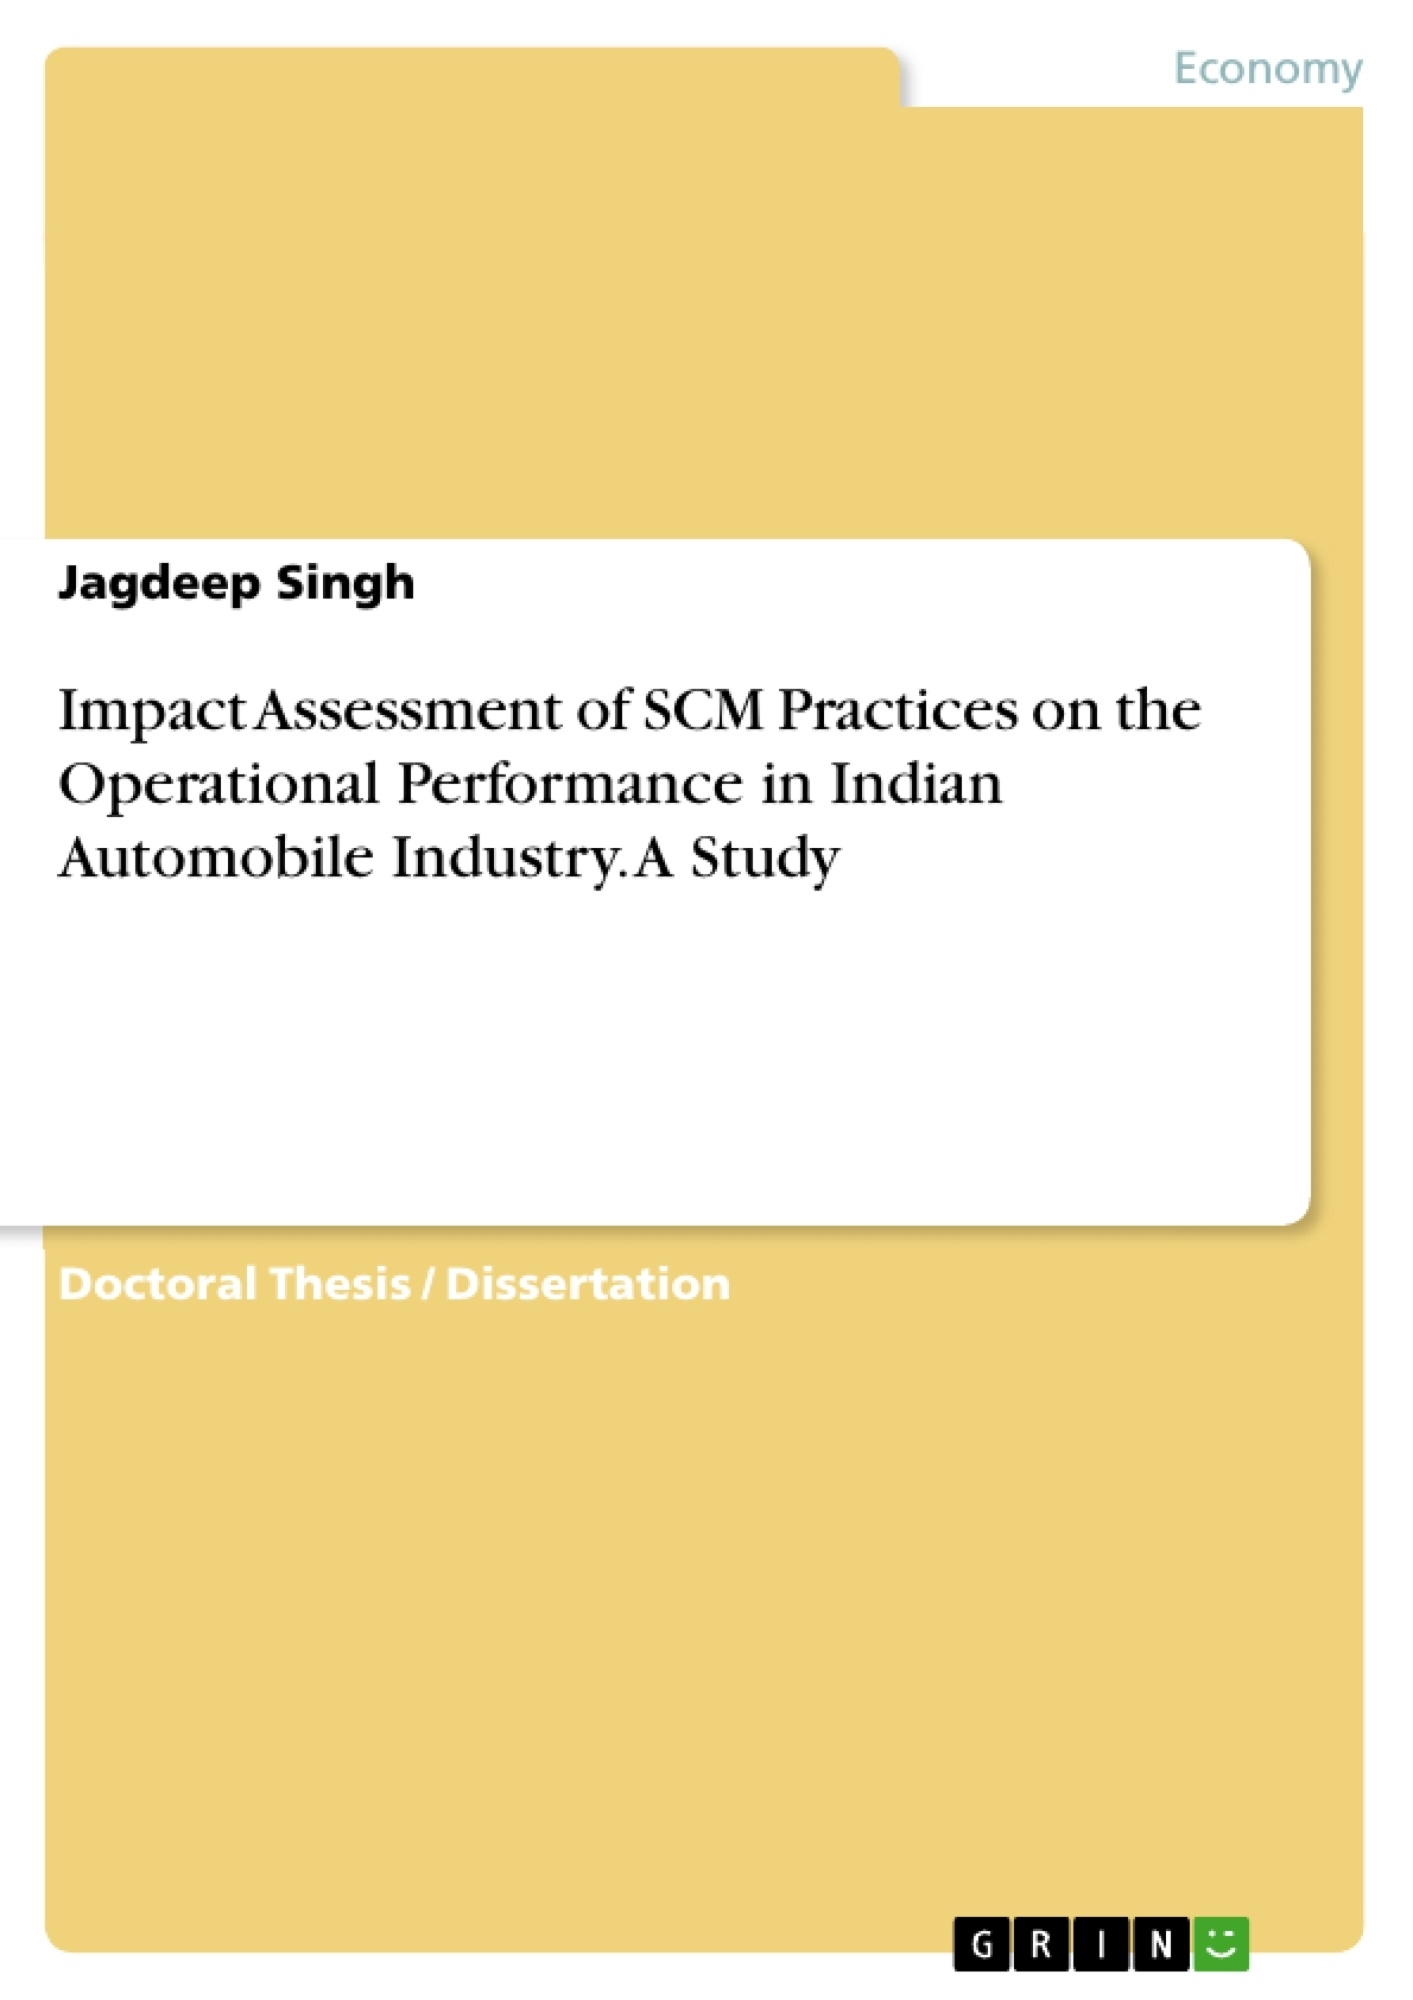 Title: Impact Assessment of SCM Practices on the Operational Performance in Indian Automobile Industry. A Study